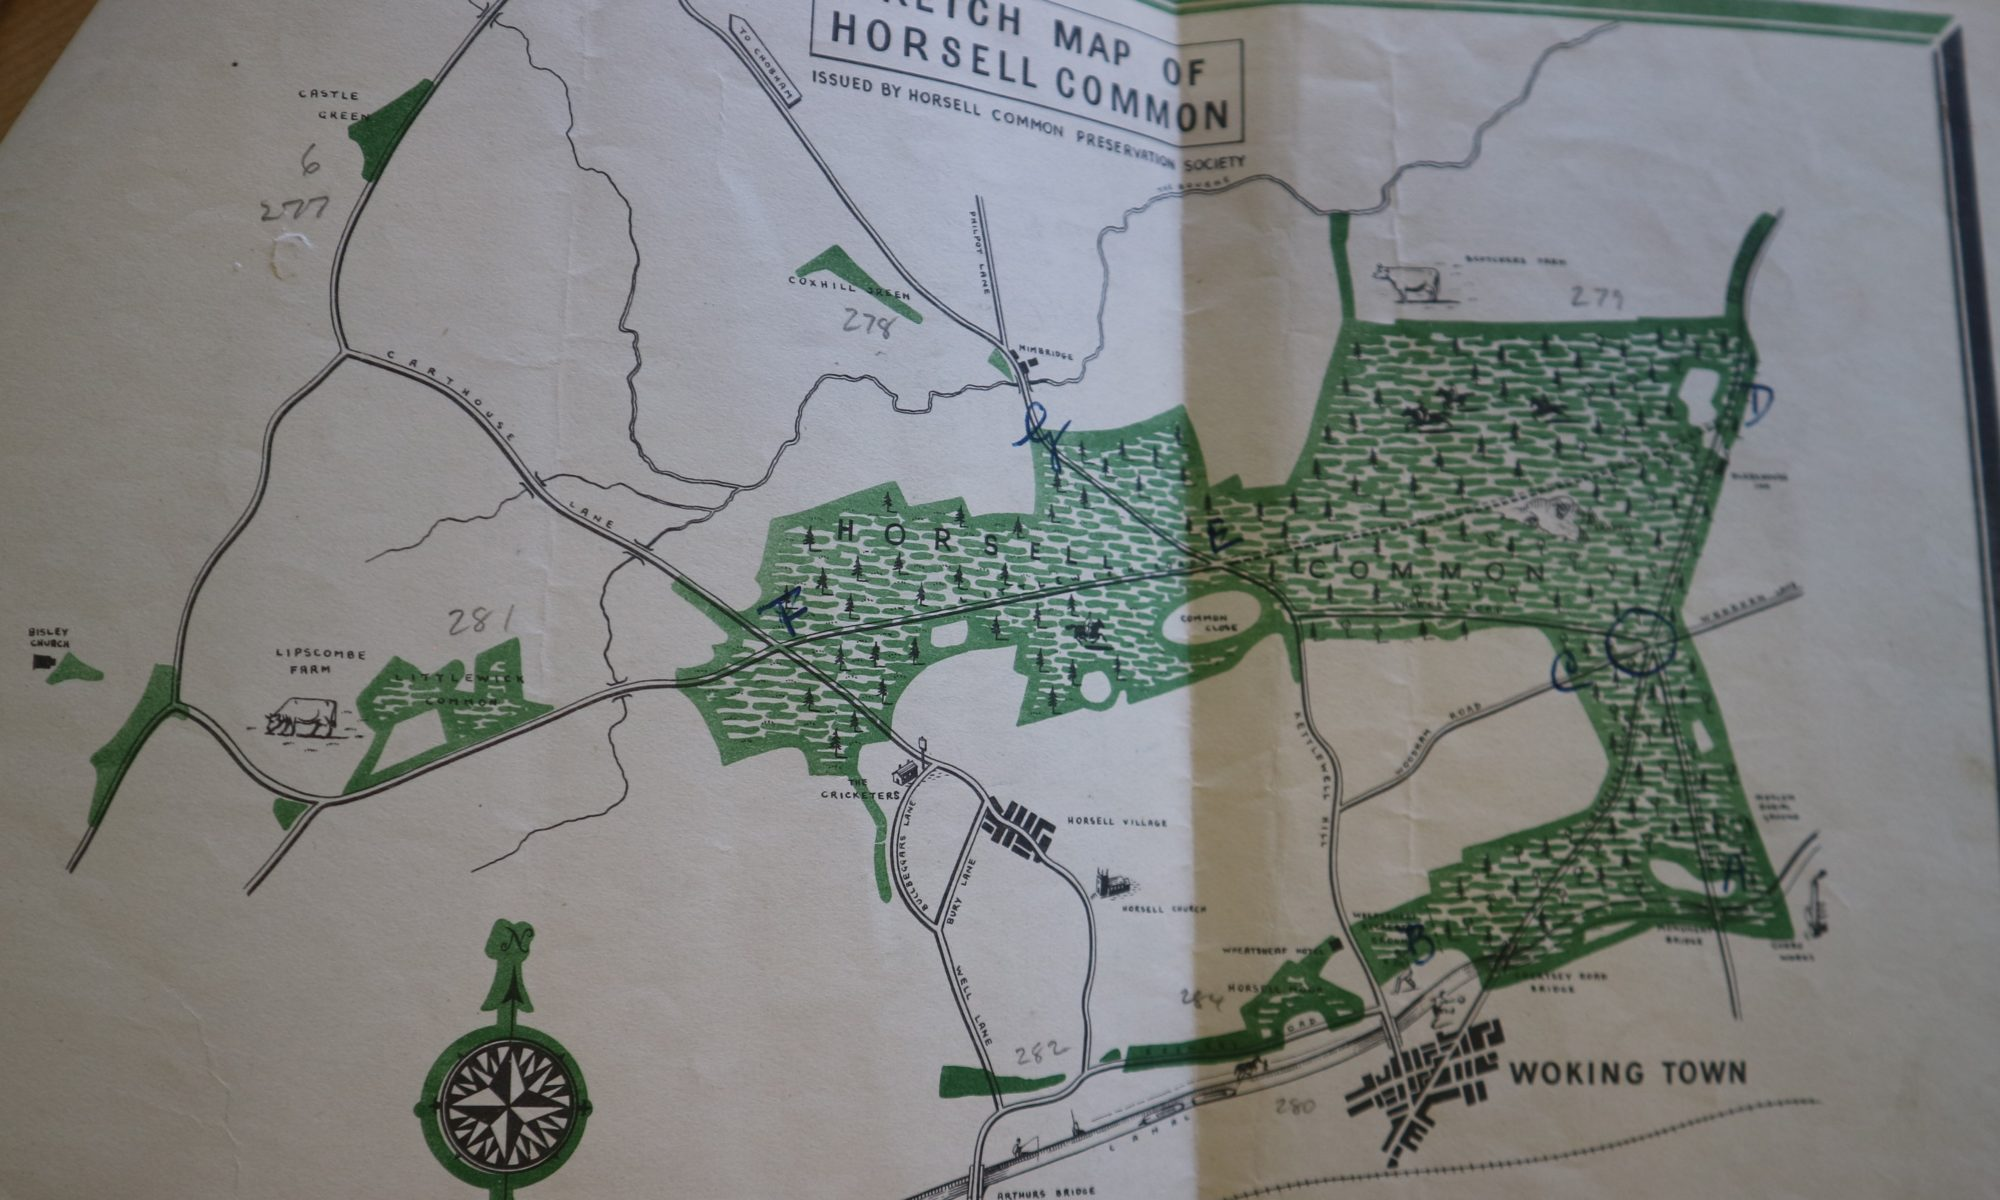 horsell common 1986